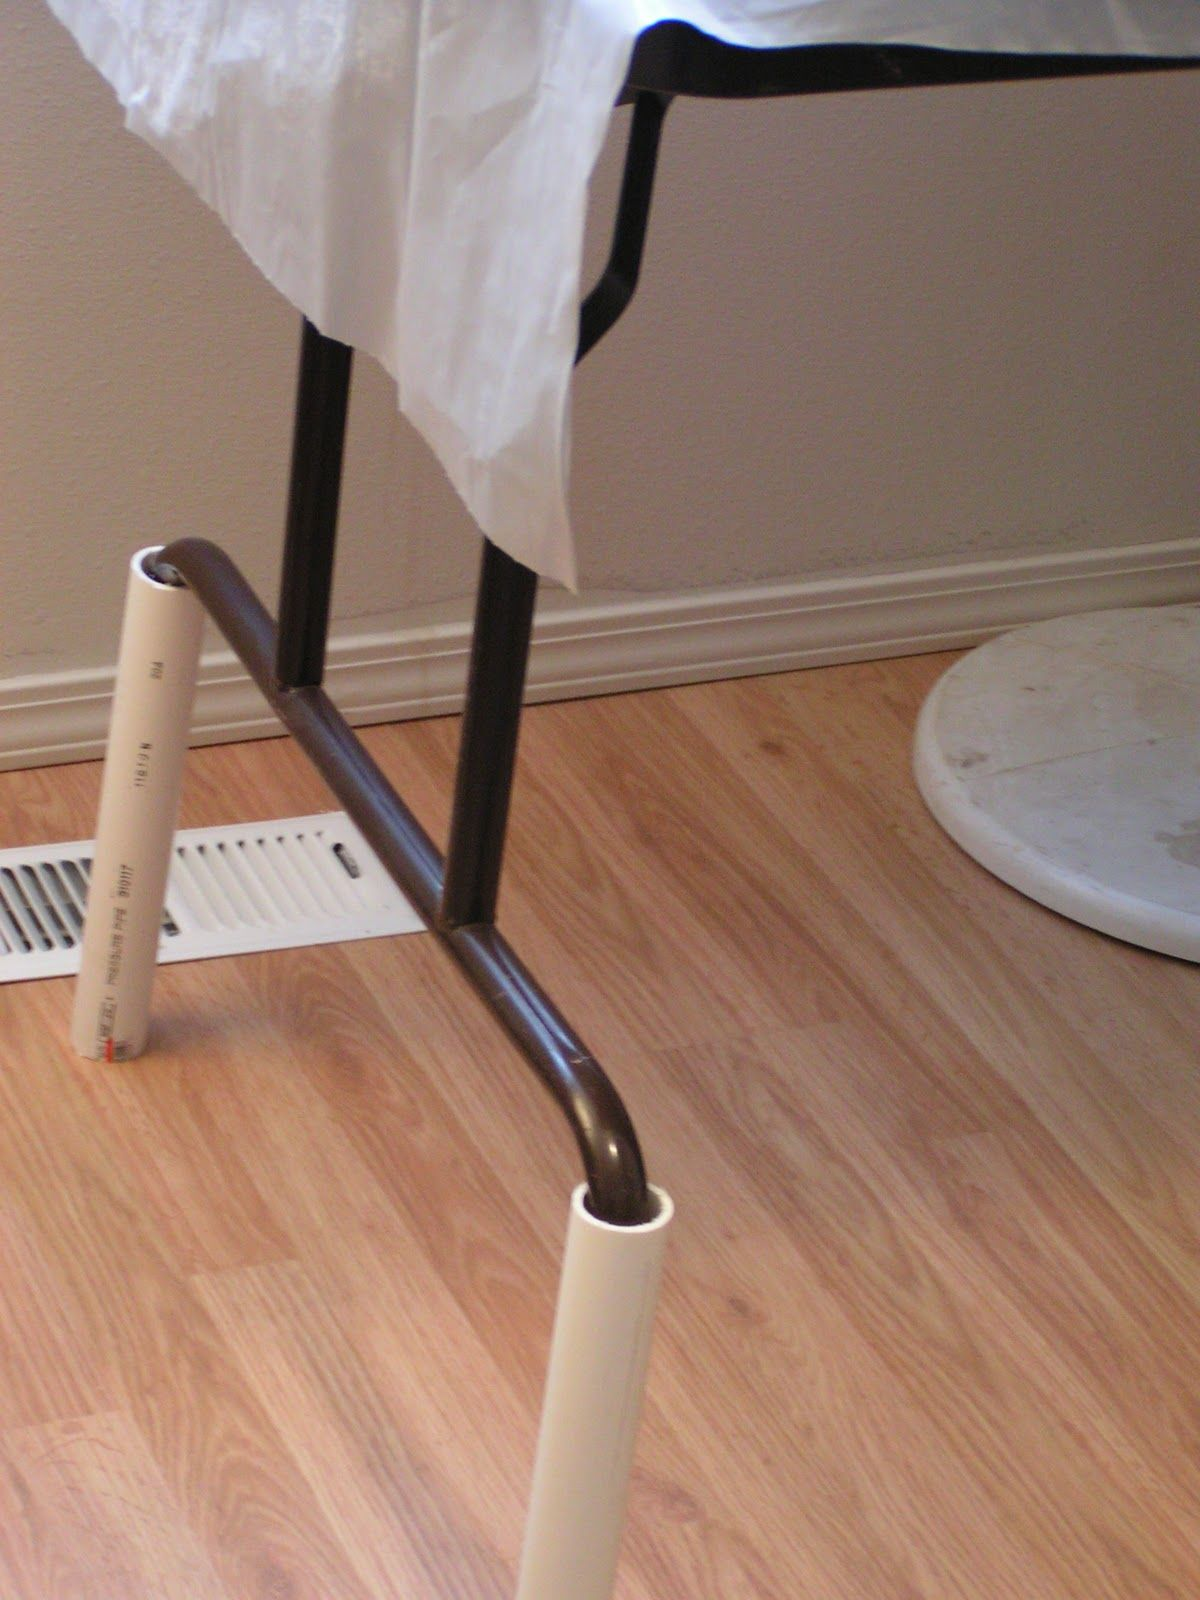 Use Lengths Of Pvc Pipe To Raise The Height Of A Folding